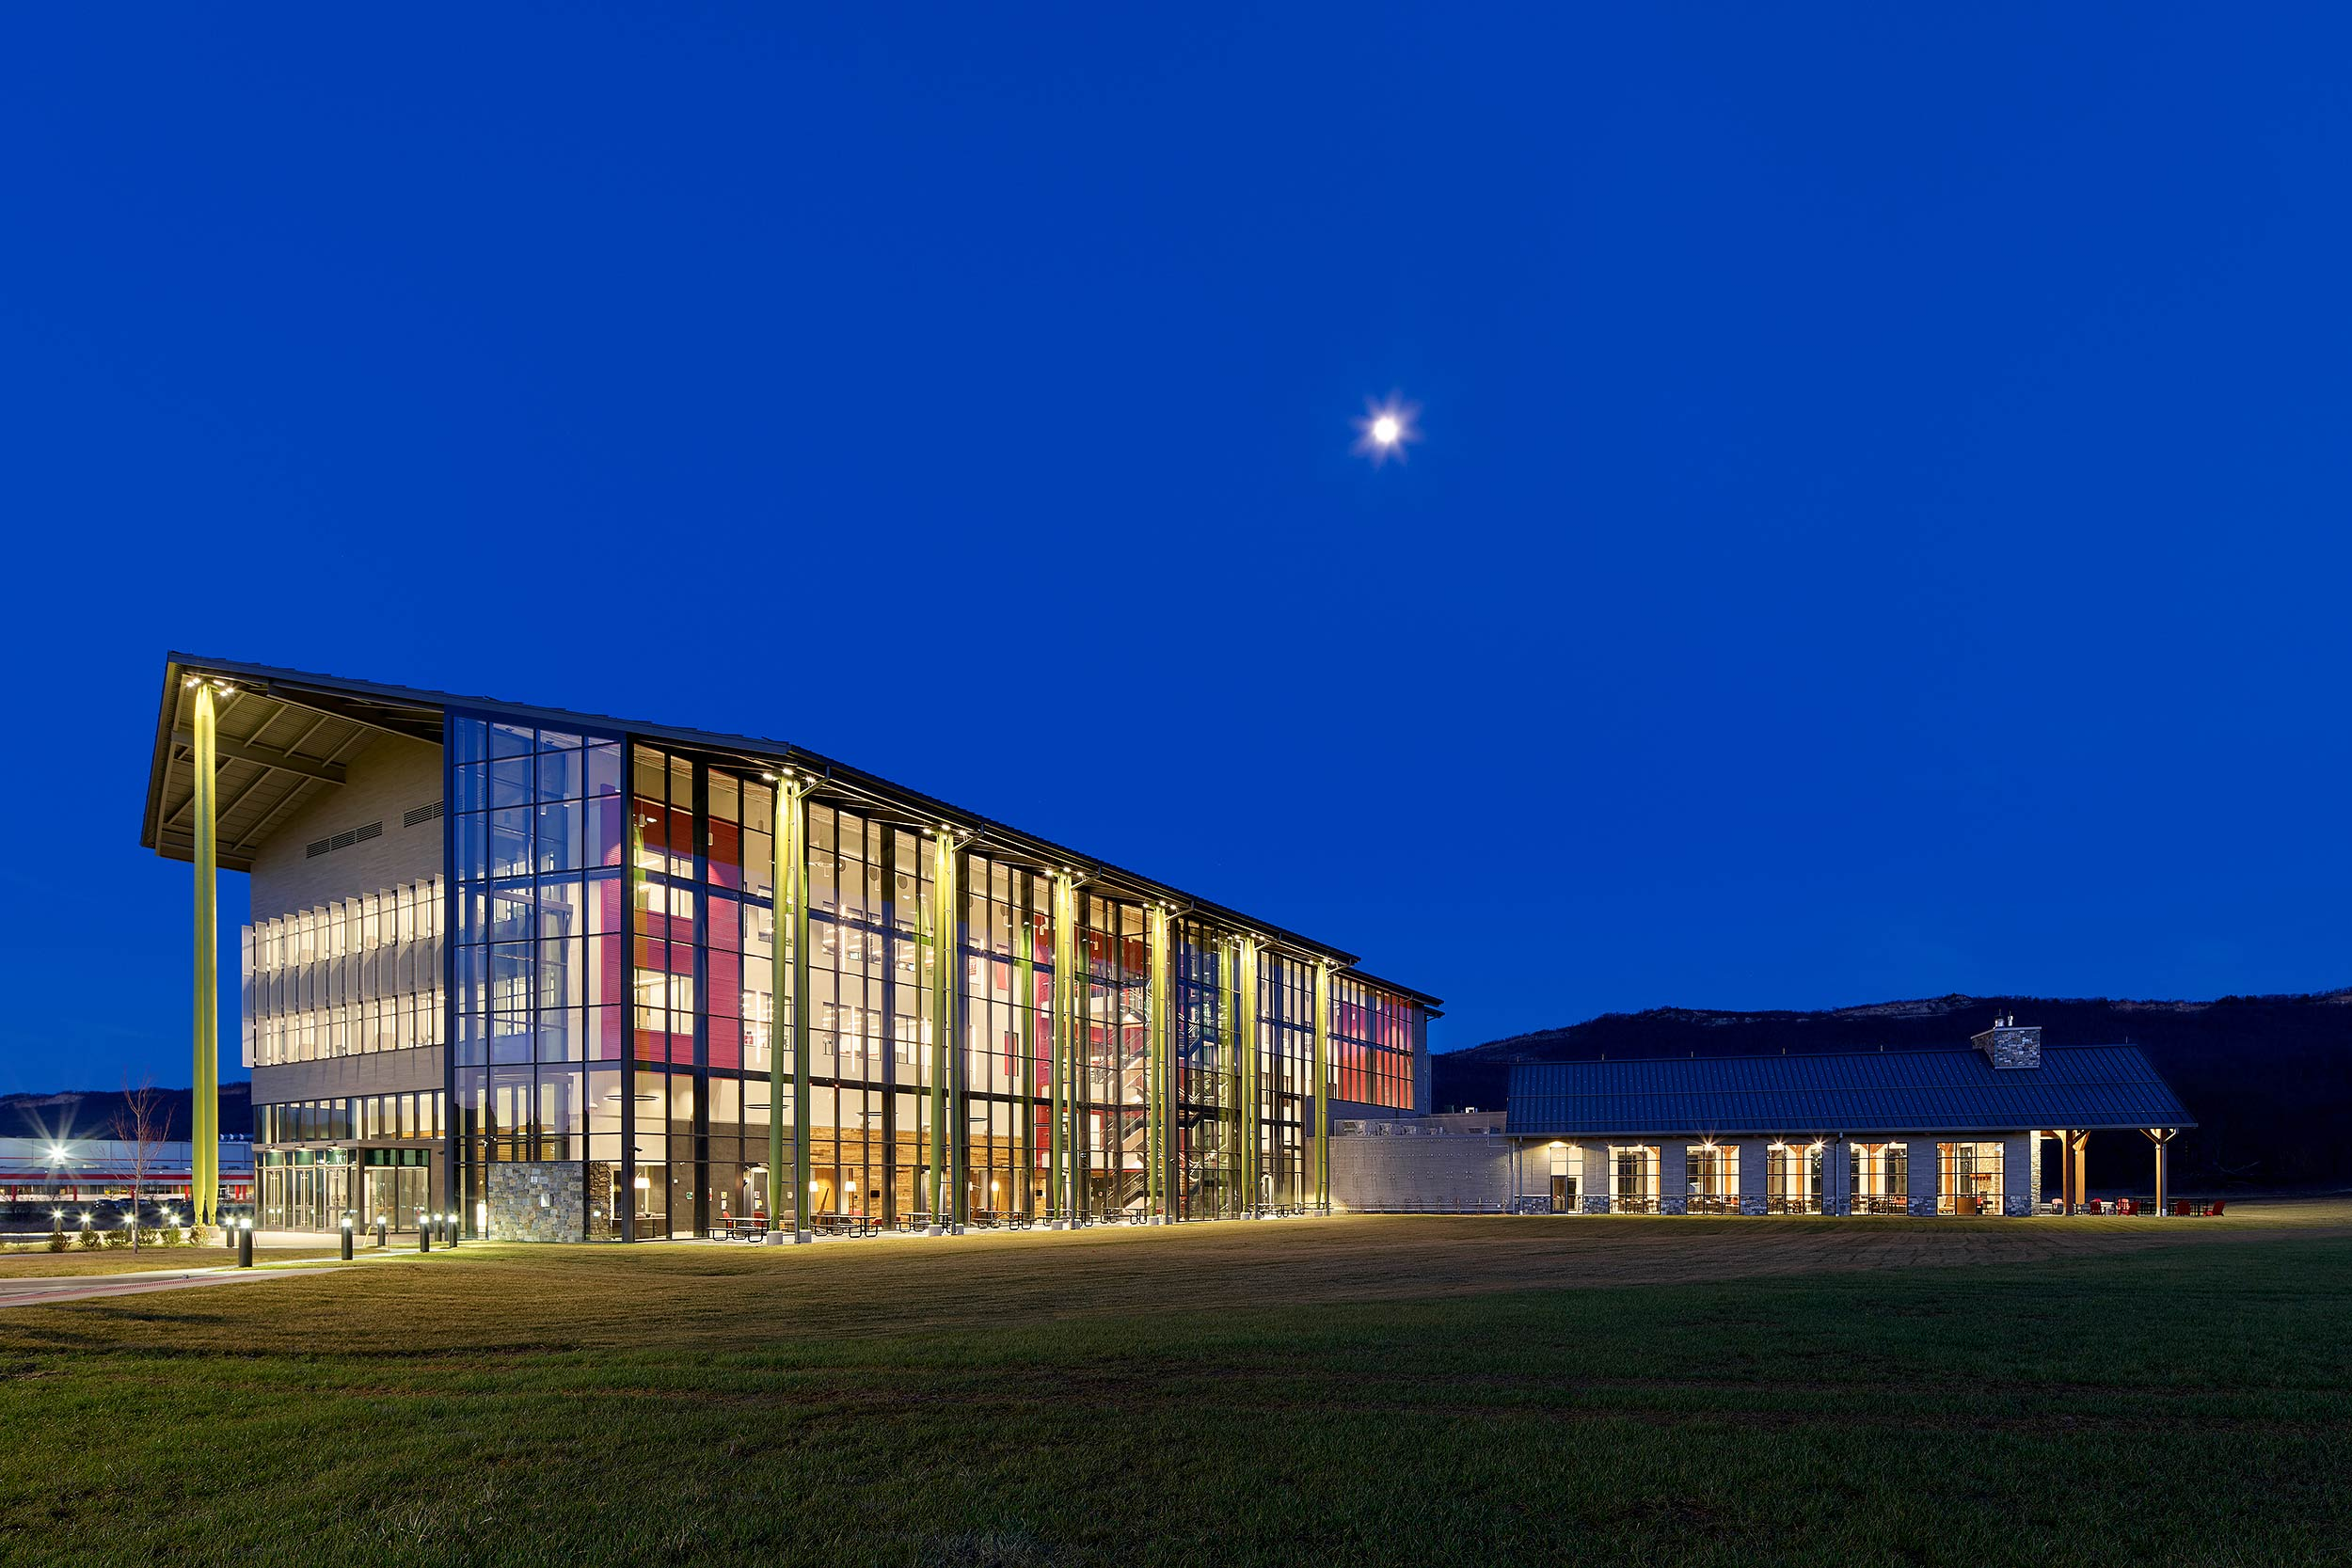 Sheetz Corporate HQ LR Kimball, Daroff Design Altoona, PA